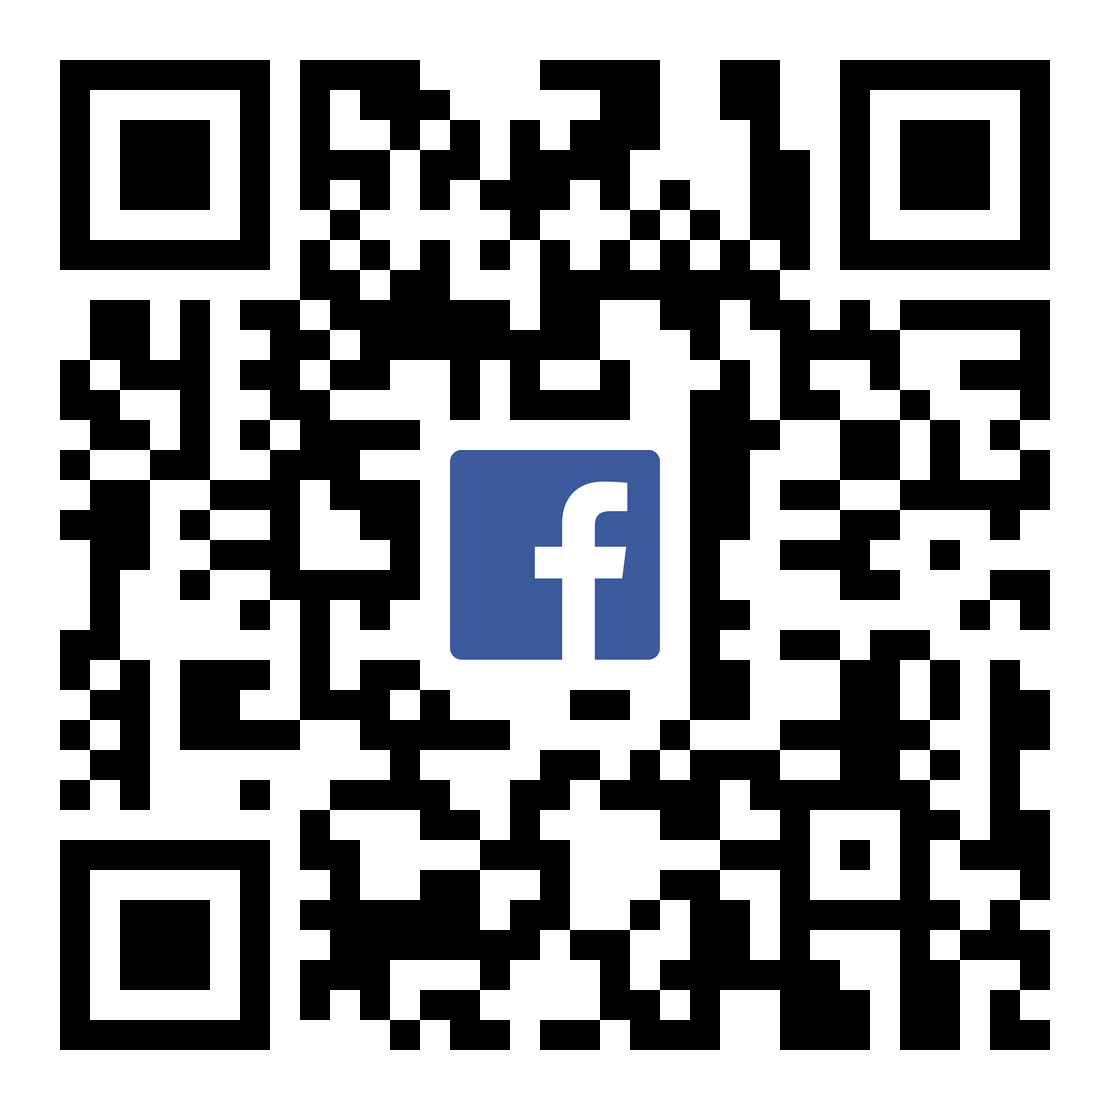 book-launch-event-qr-code